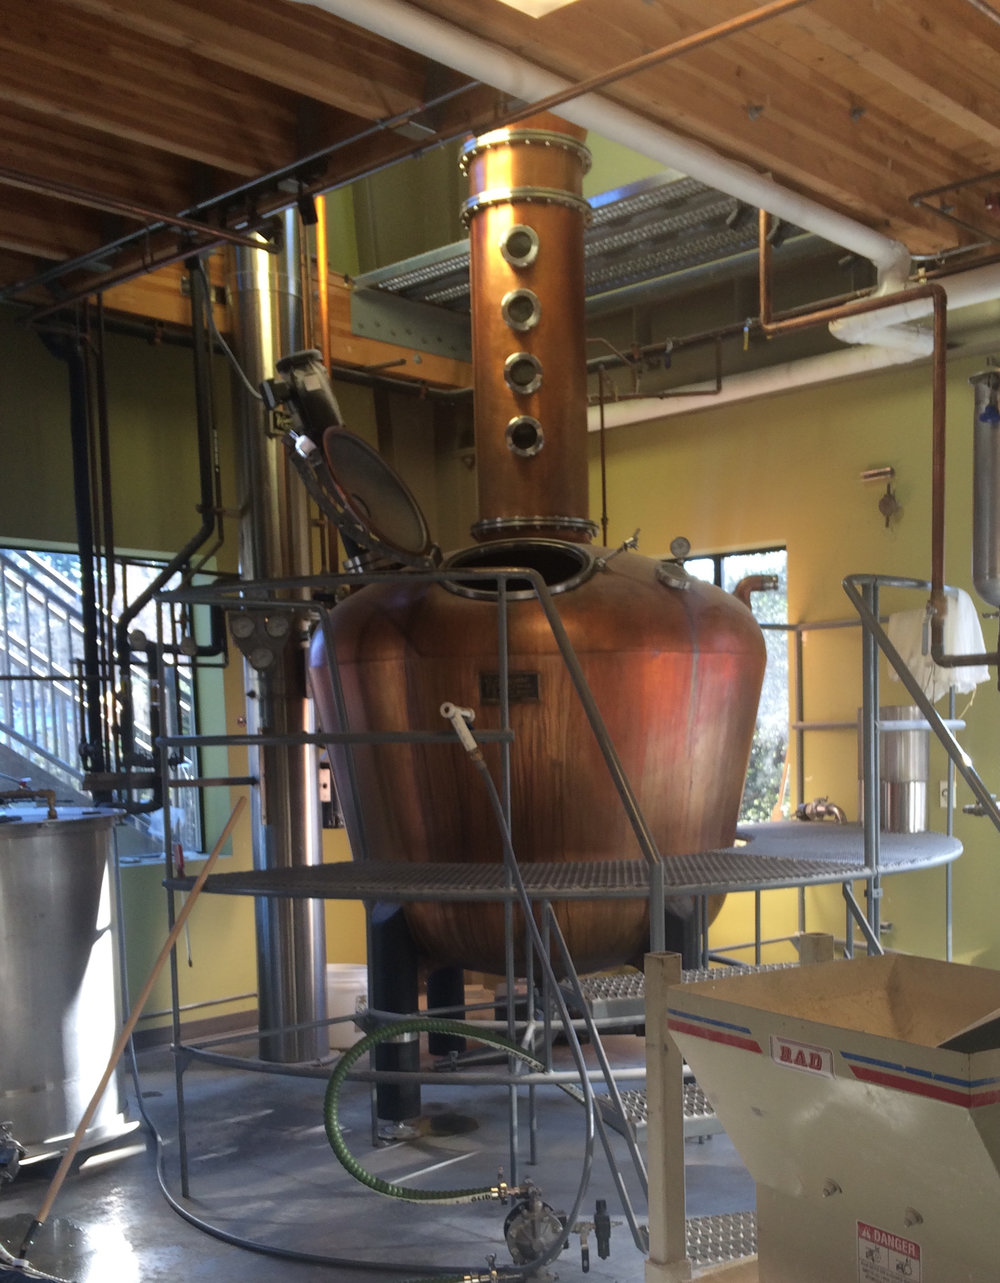 Part of the on-site distilling process. I think it looks like a giant whiskey bottle.